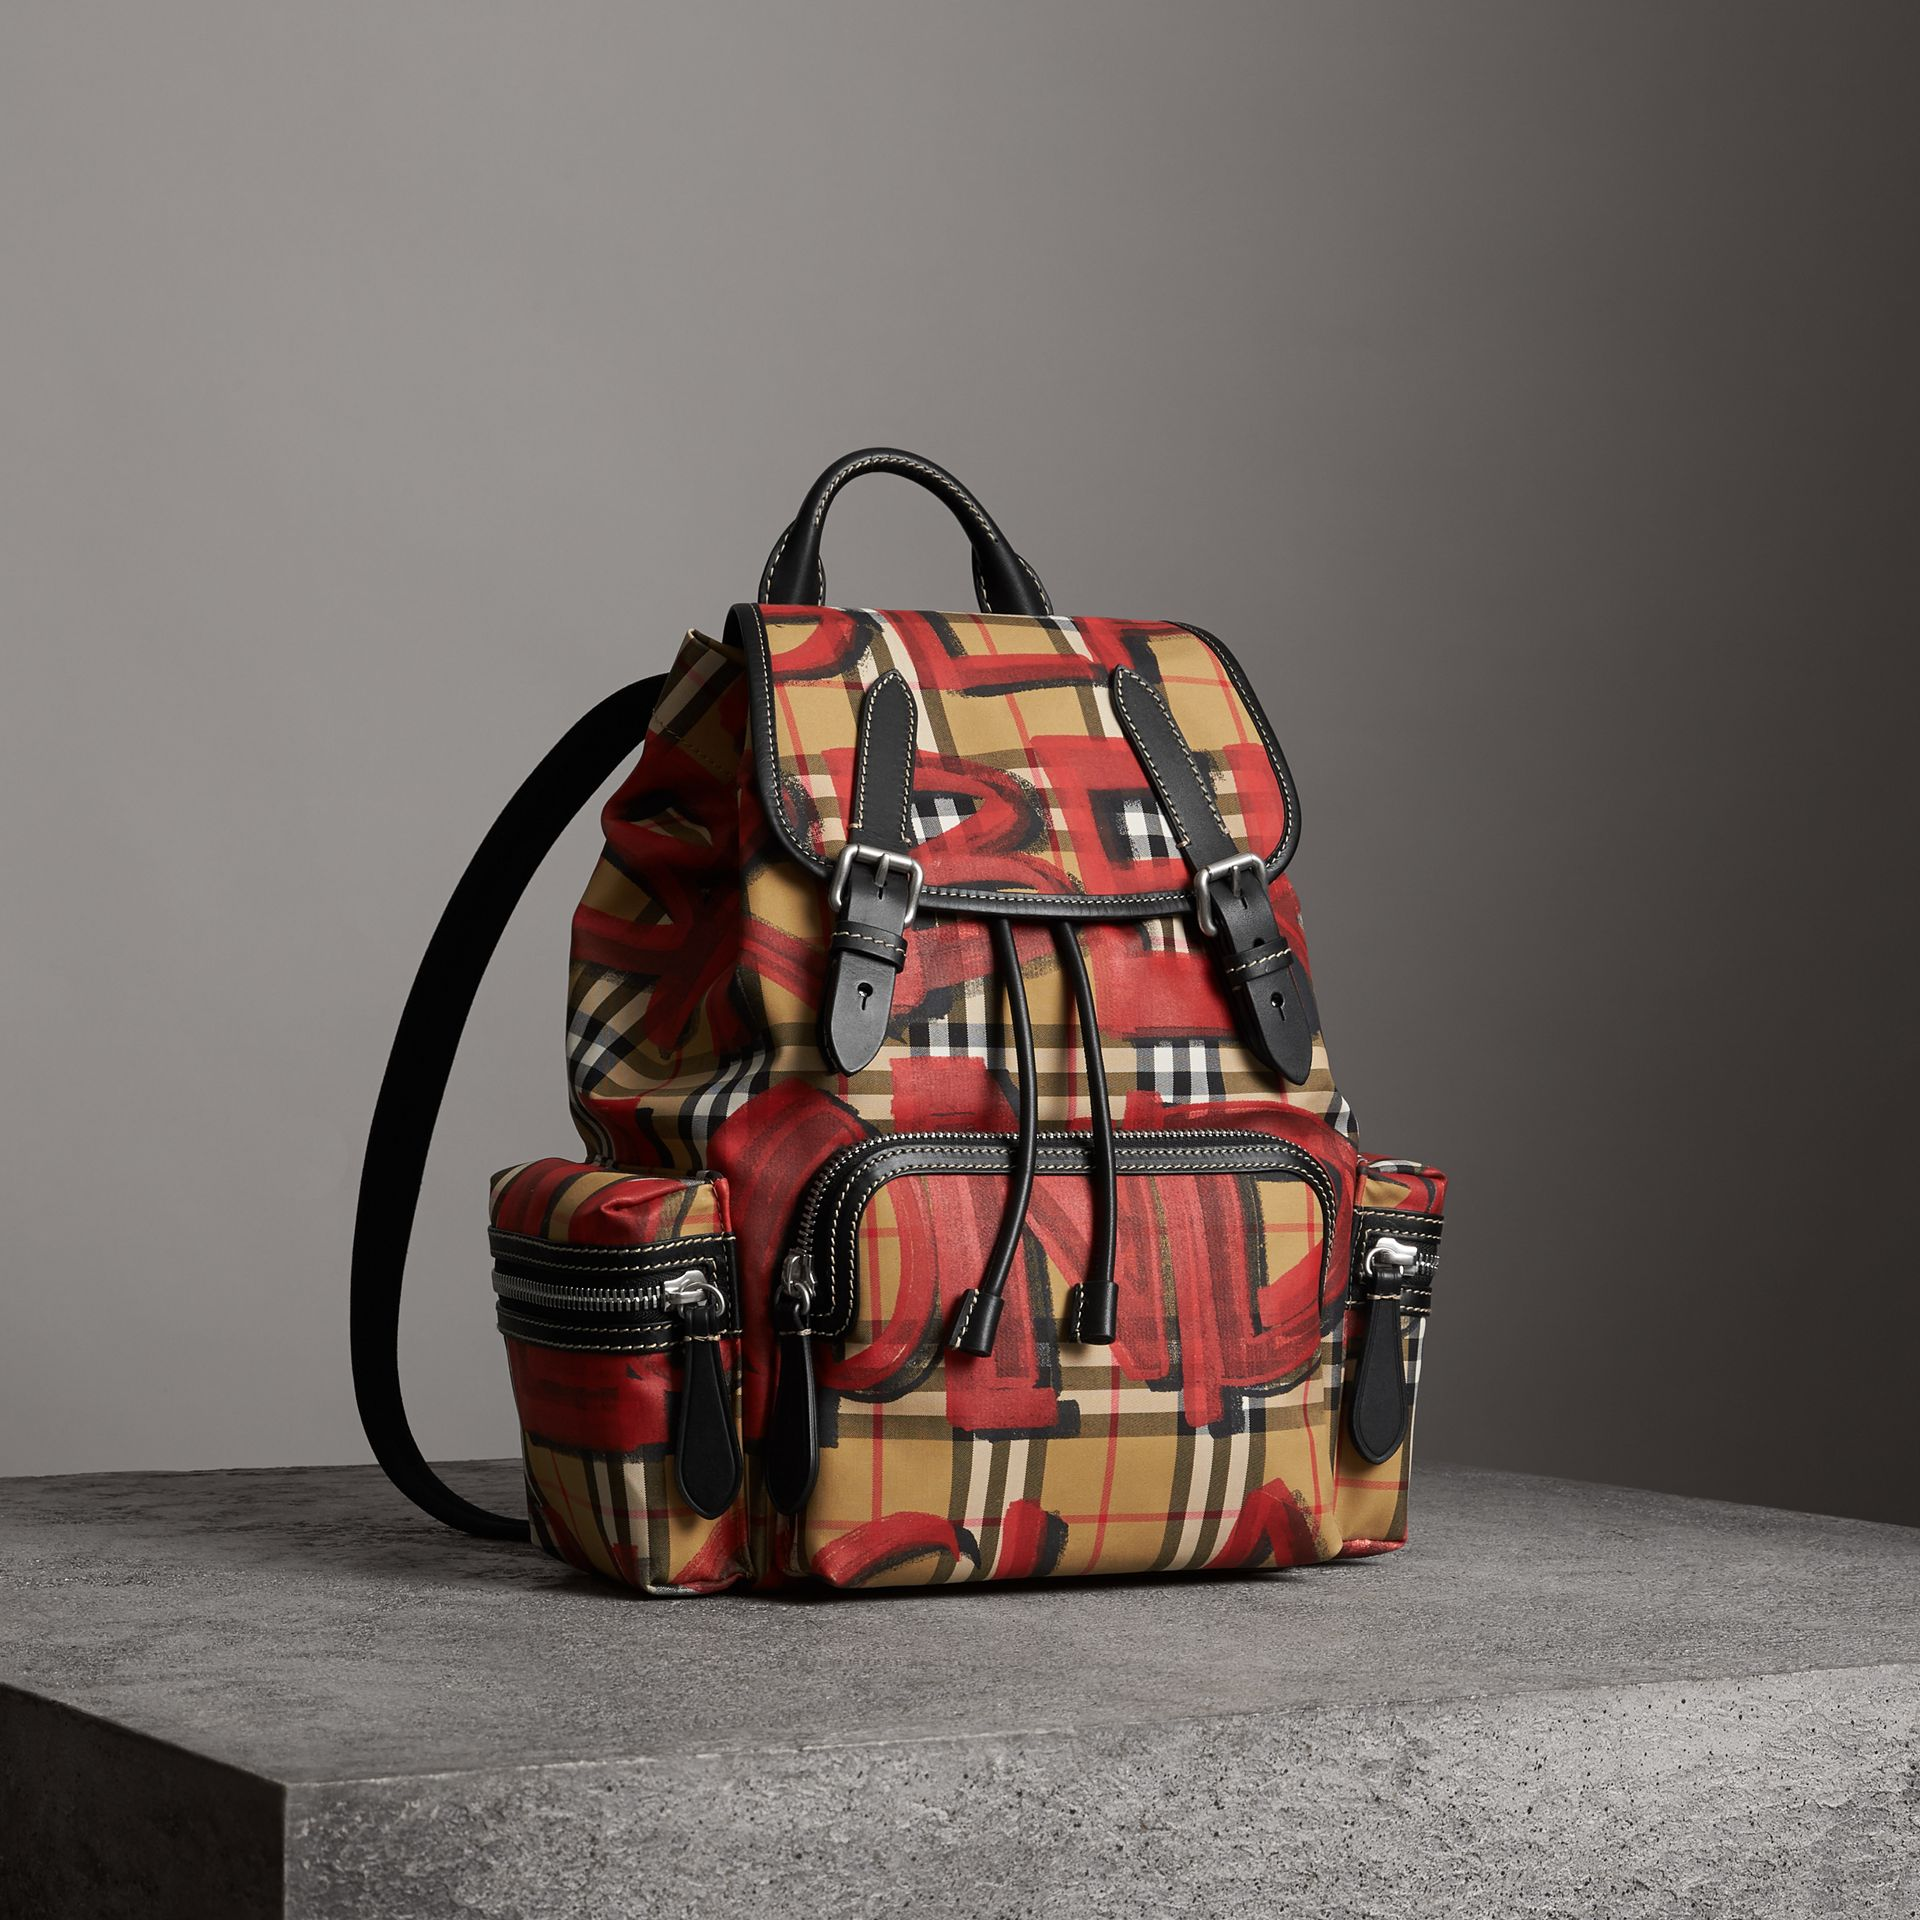 Sac The Rucksack moyen à motif Vintage check et graffiti (Jaune Antique/rouge) - Femme | Burberry - photo de la galerie 0